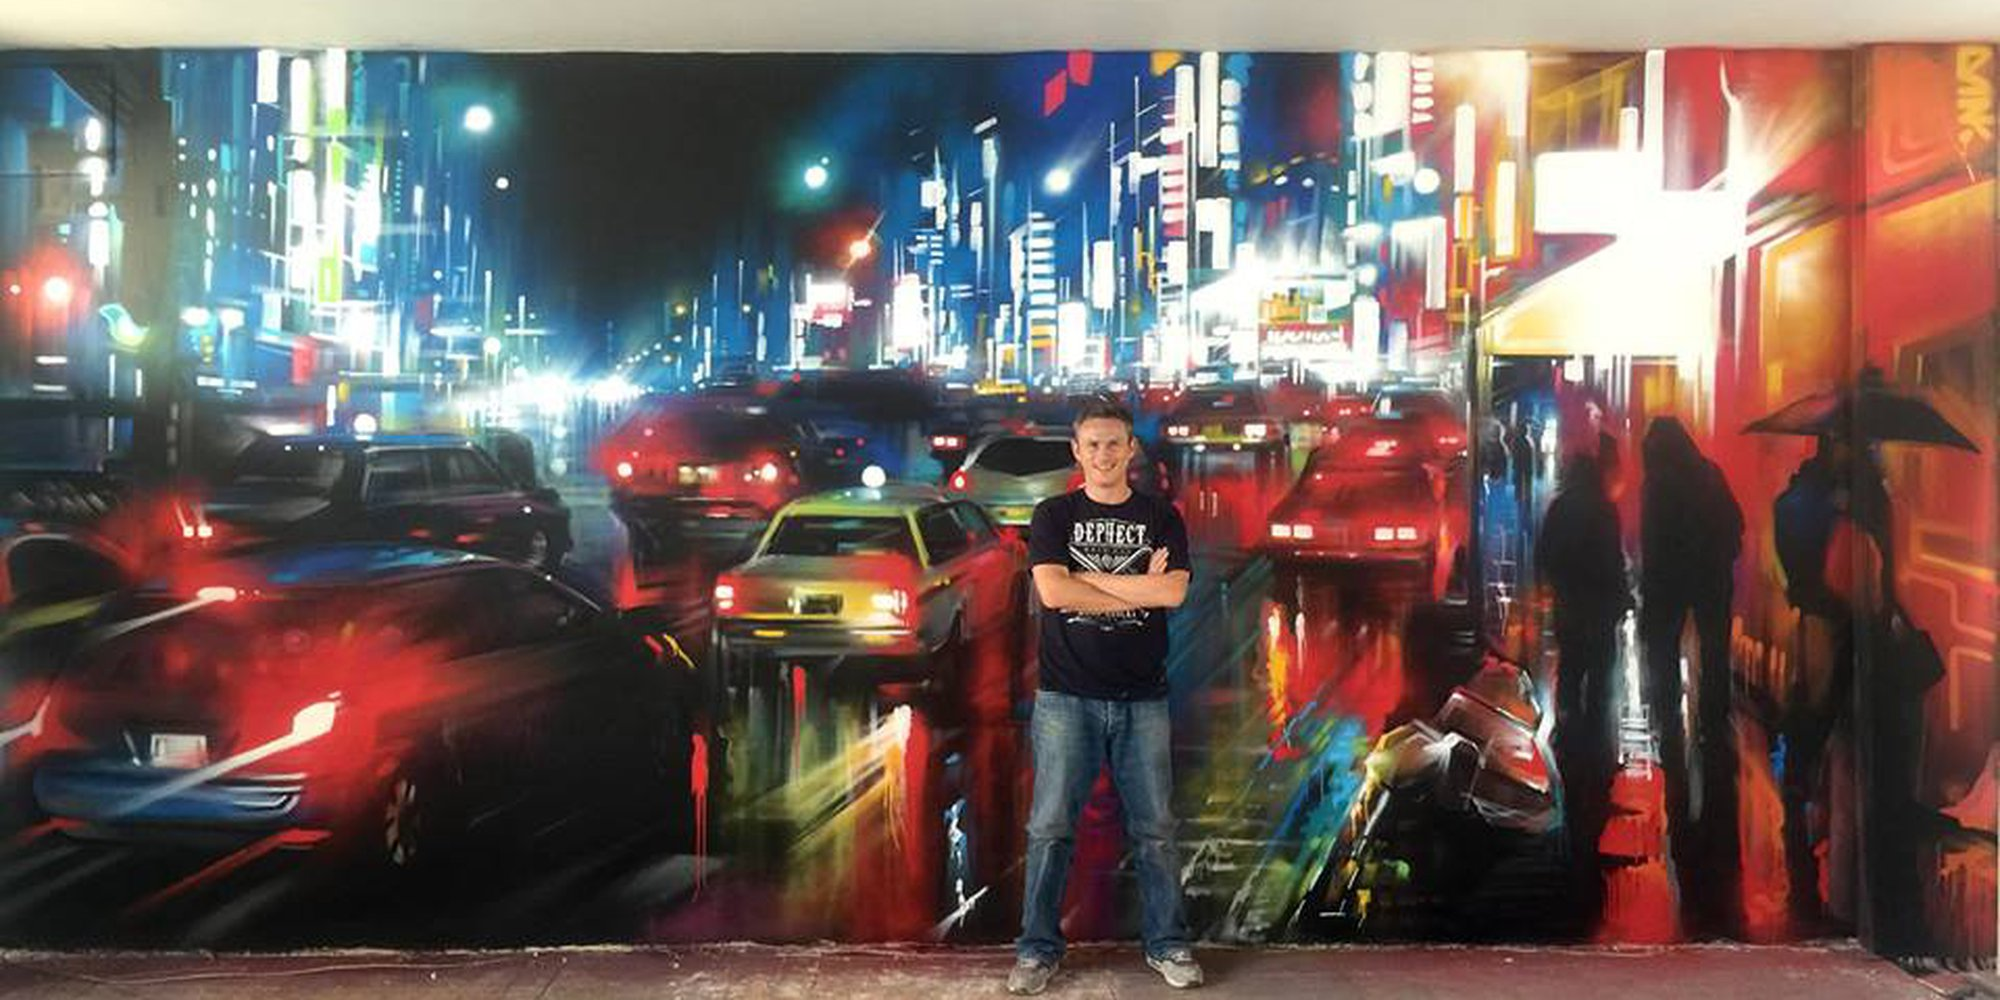 Artists in the News: Dan Kitchener